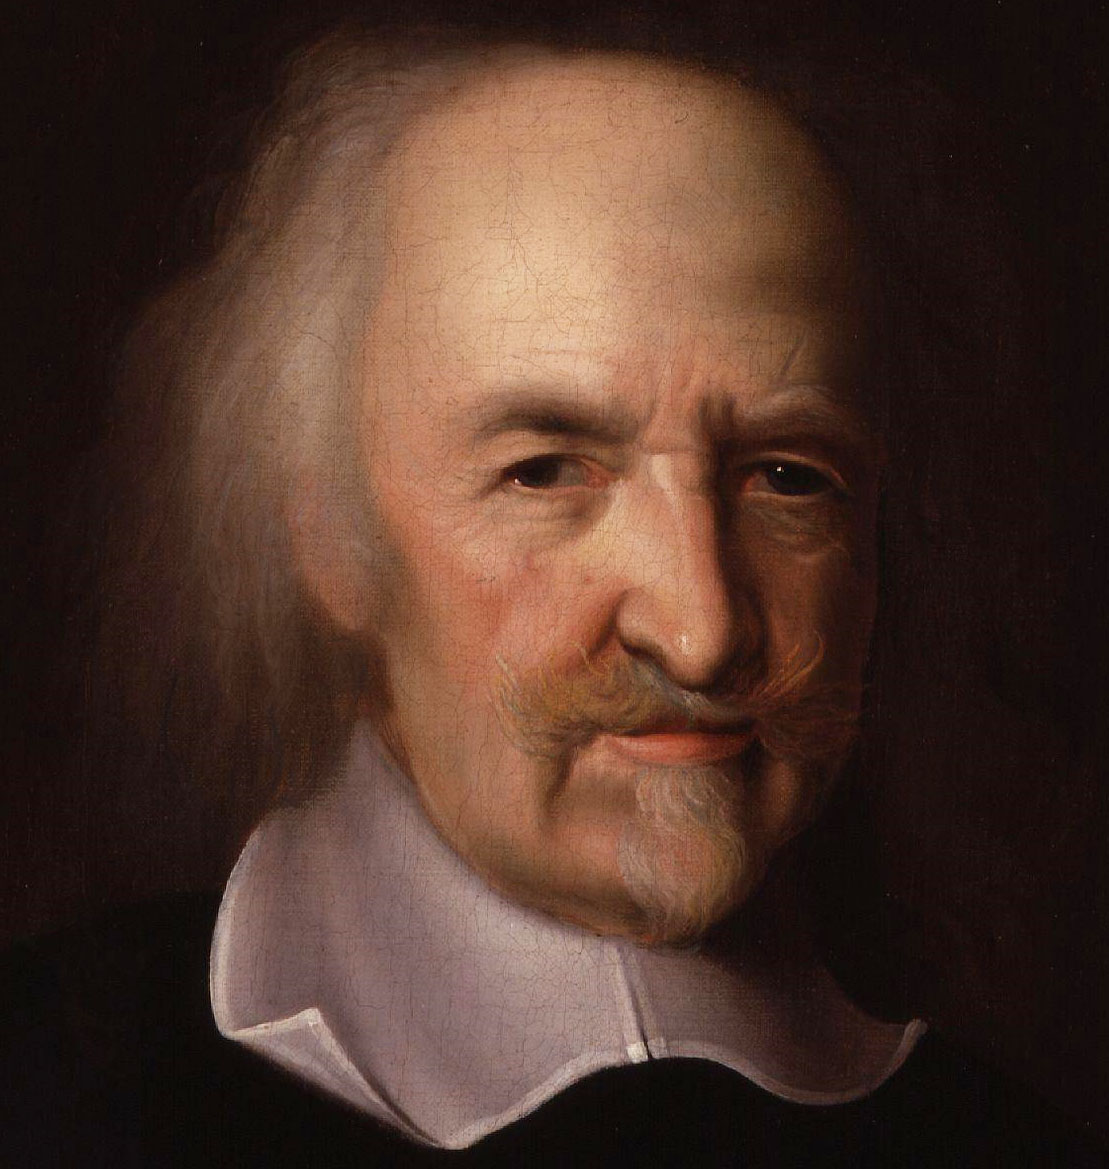 experimental theology are humans good or bad hobbes vs by pitting thomas hobbes against jean jacques rousseau i should note that much of this analysis was inspired by steven pinker s book the blank slate